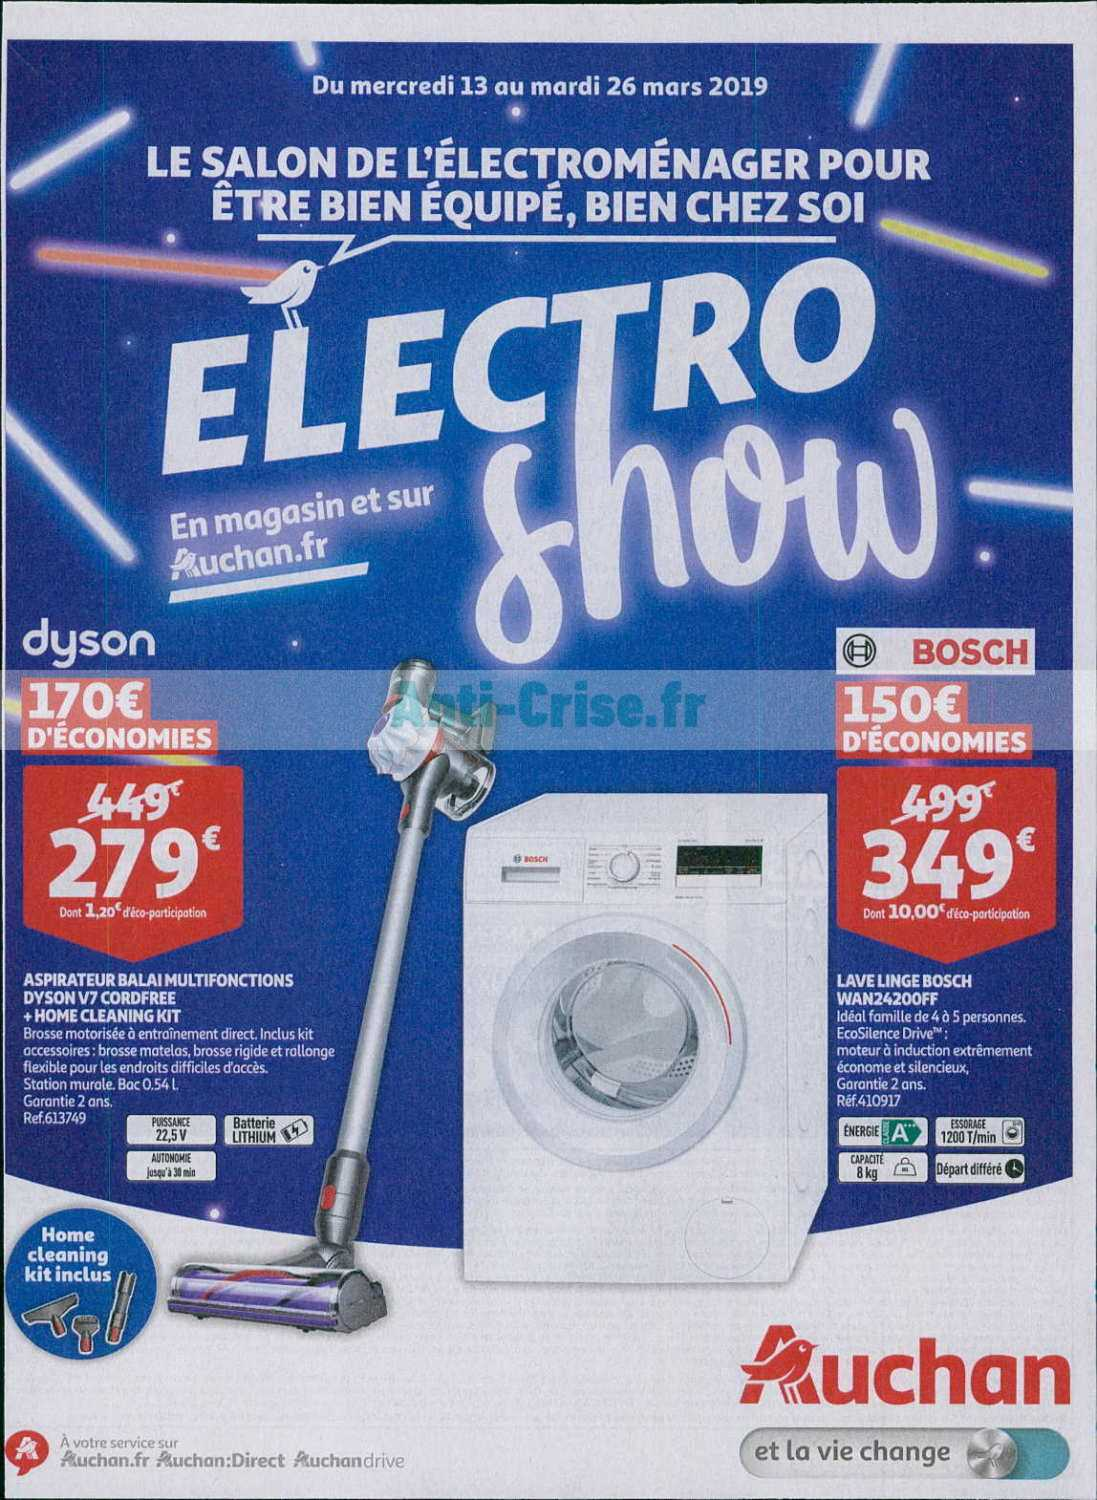 Catalogue Electromenager Catalogue Auchan Du 13 Au 26 Mars 2019 Electroménager